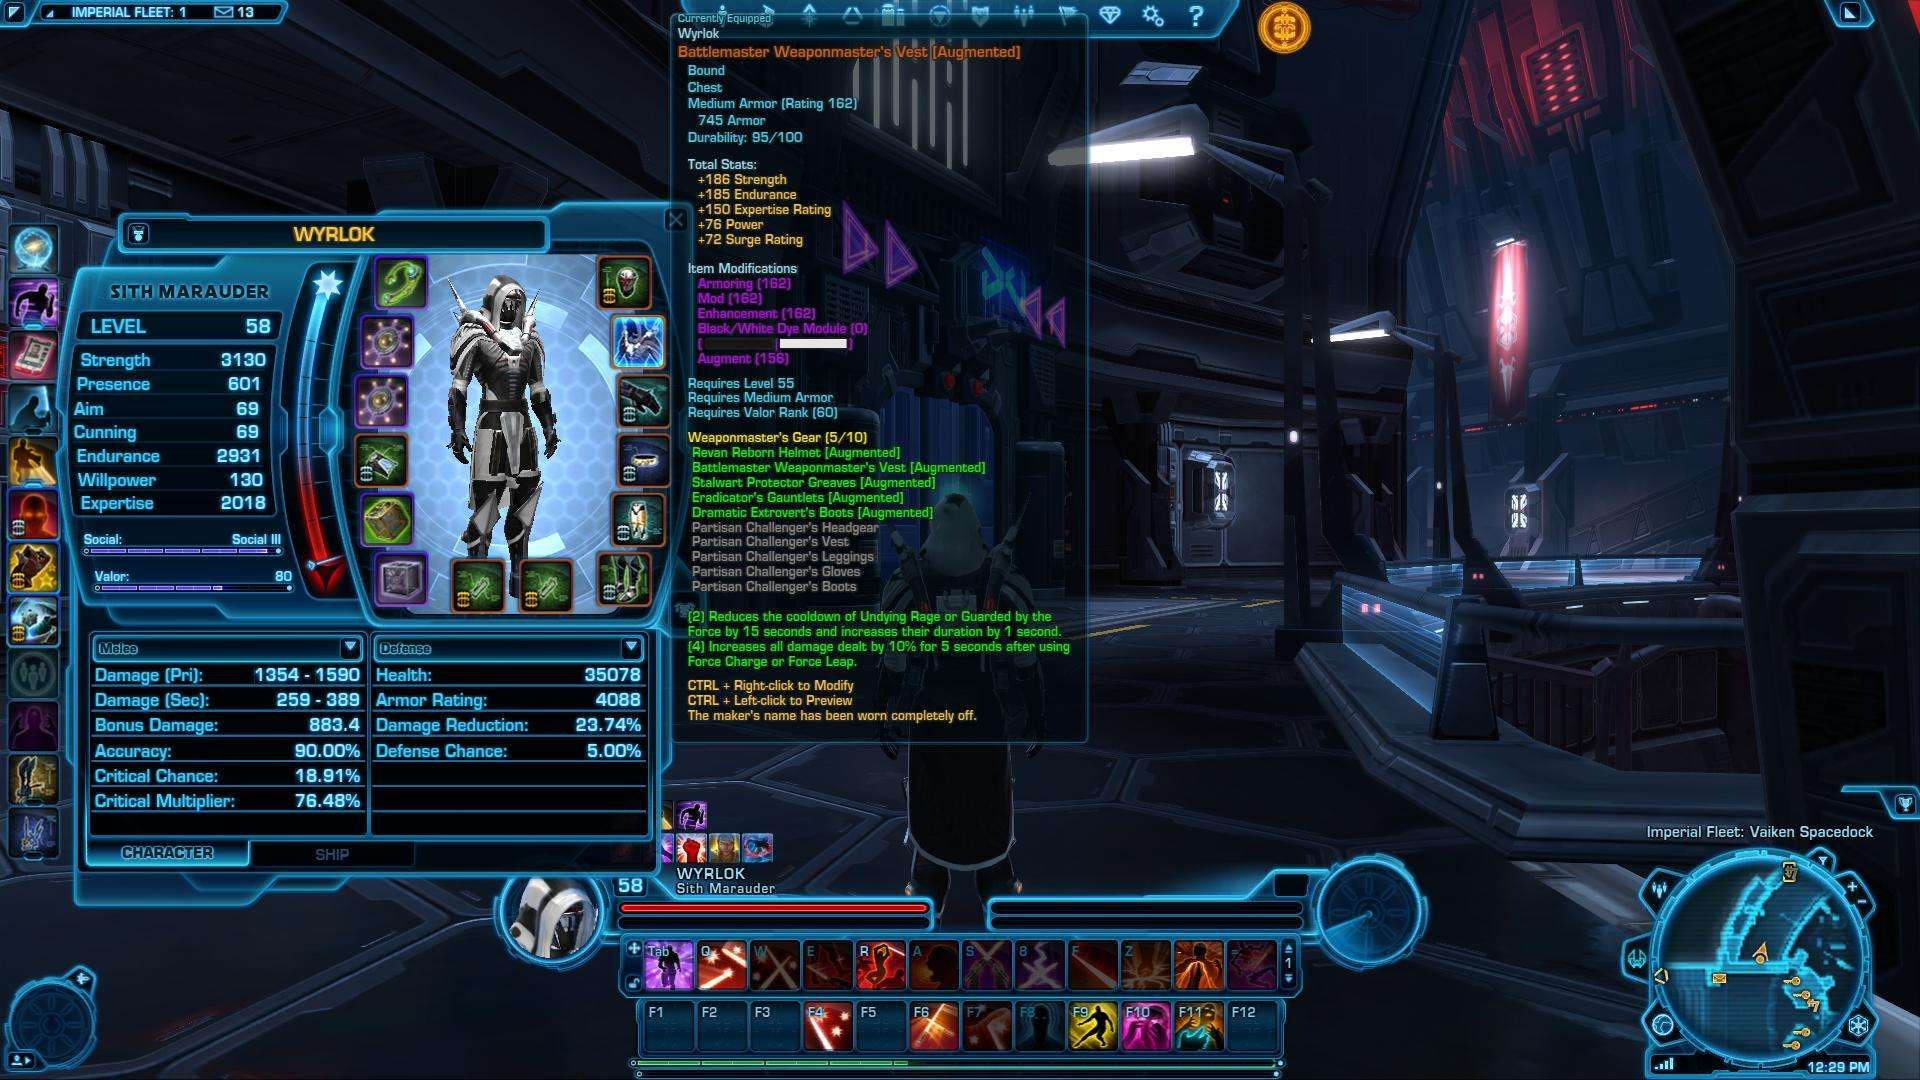 Cleaned My Room! Swtor_19